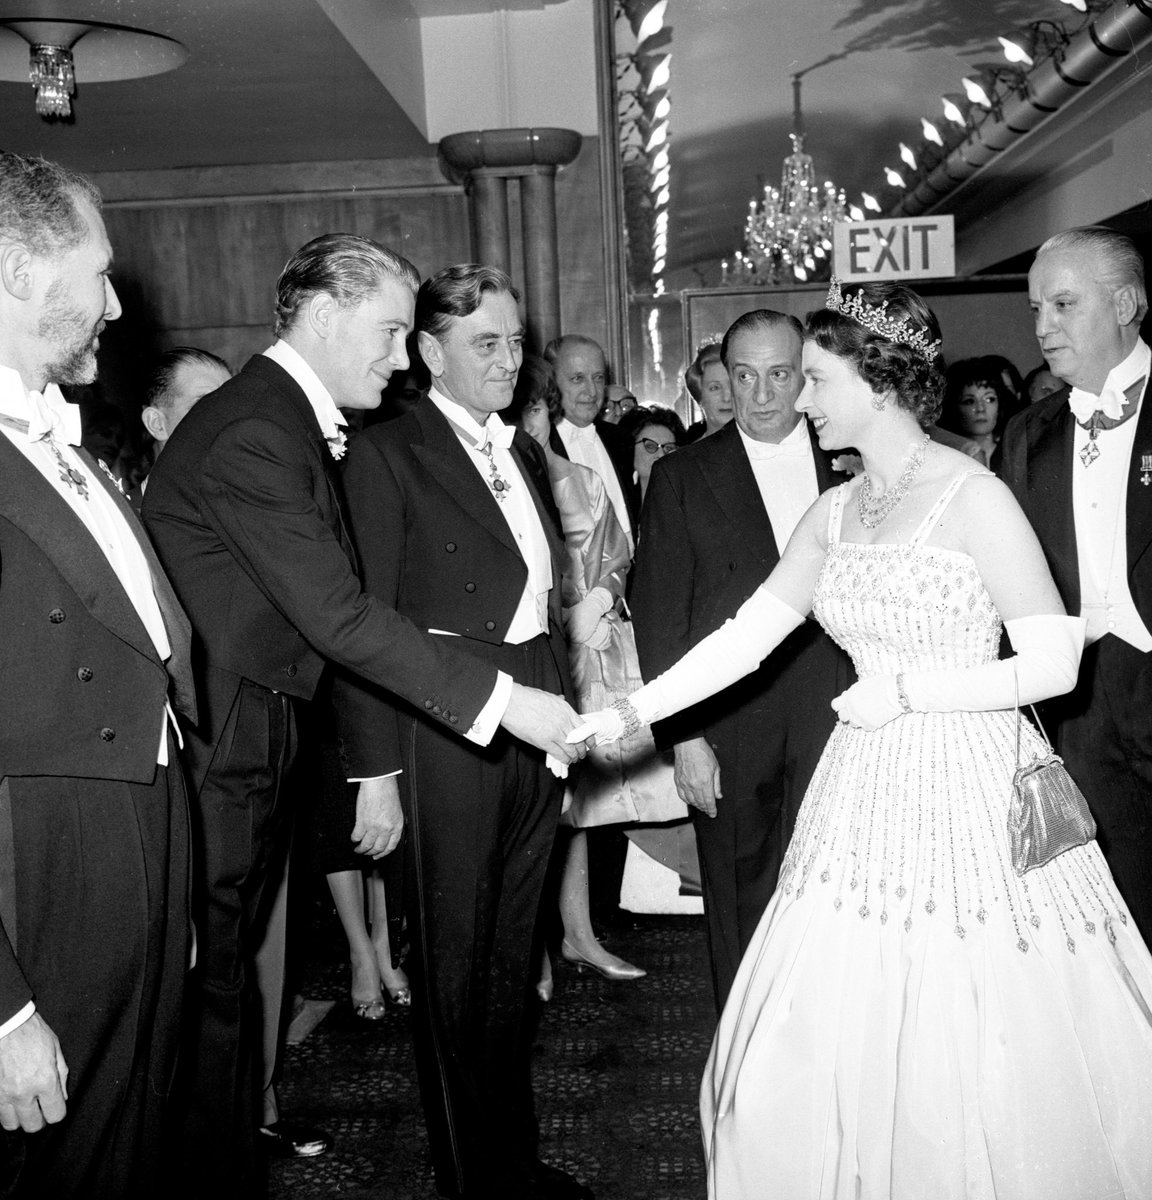 The dress, designed by the renowned British fashion designer Sir Norman Hartnell, was first worn by The Queen in the 1960's. 📸 Her Majesty wearing the dress at the premiere of Lawrence of Arabia' in 1962.